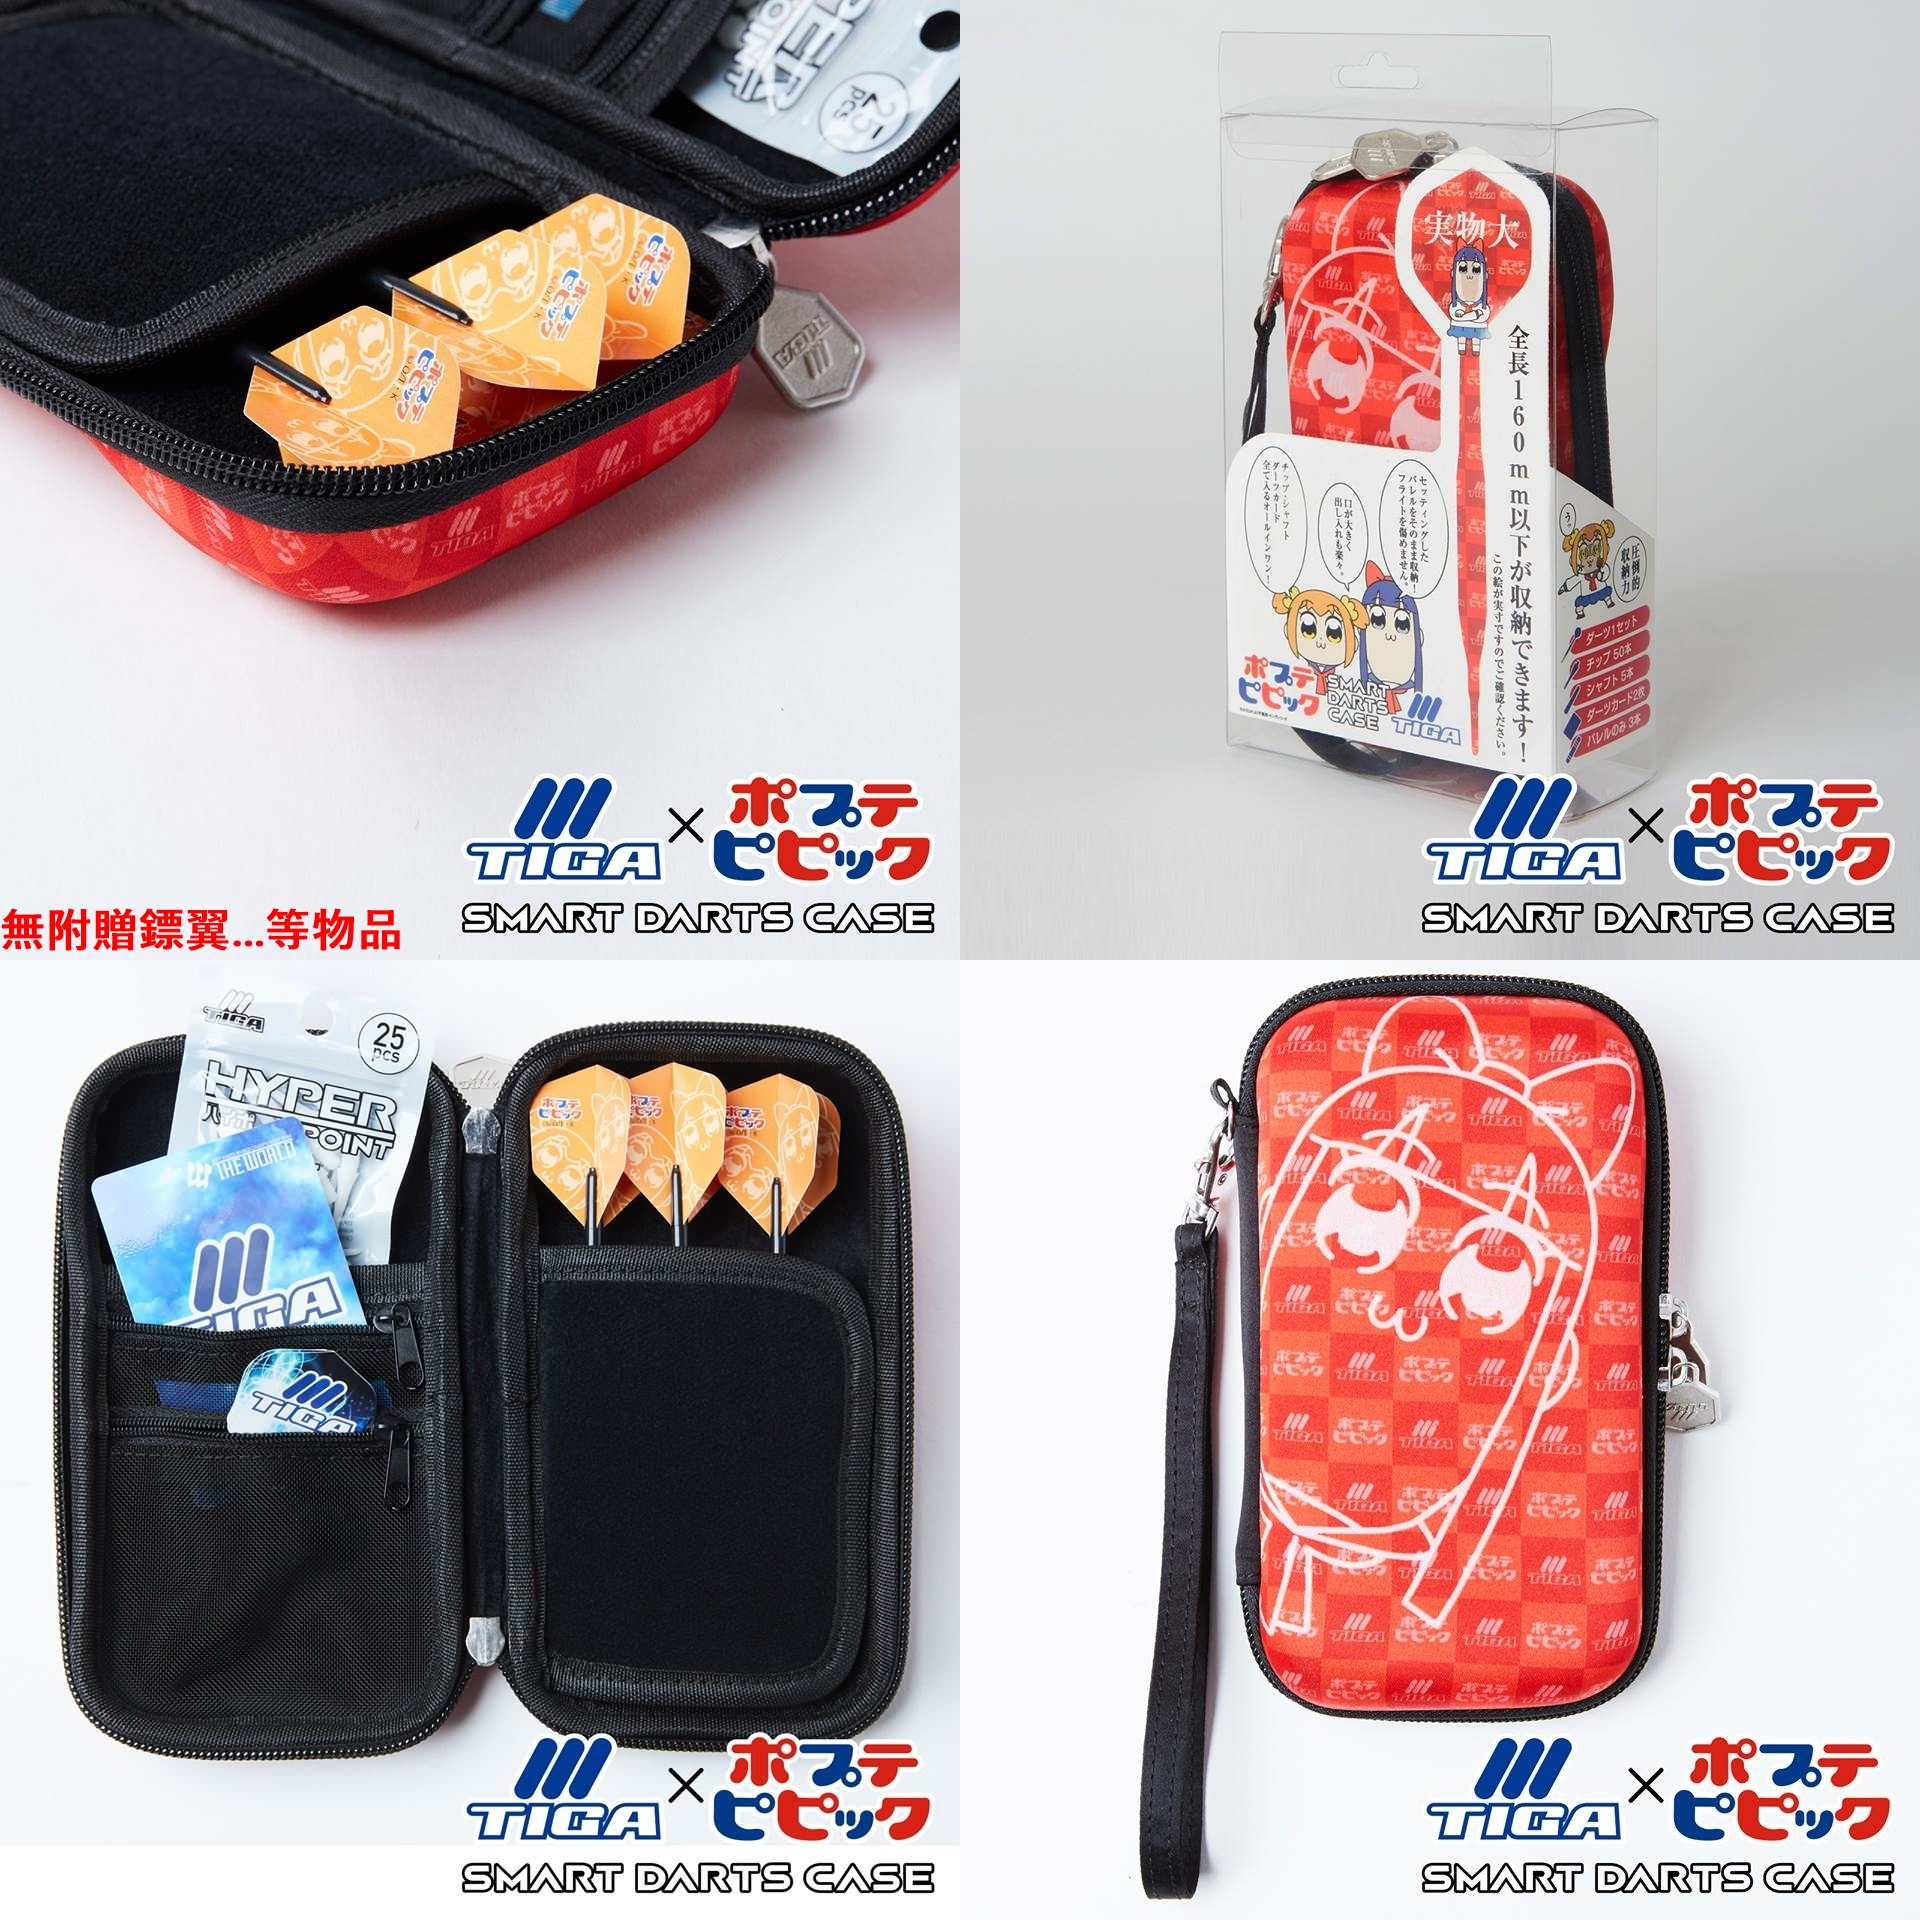 TIGA-SMART-DARTS-CASE-POPTEAMEPIC-01.jpg